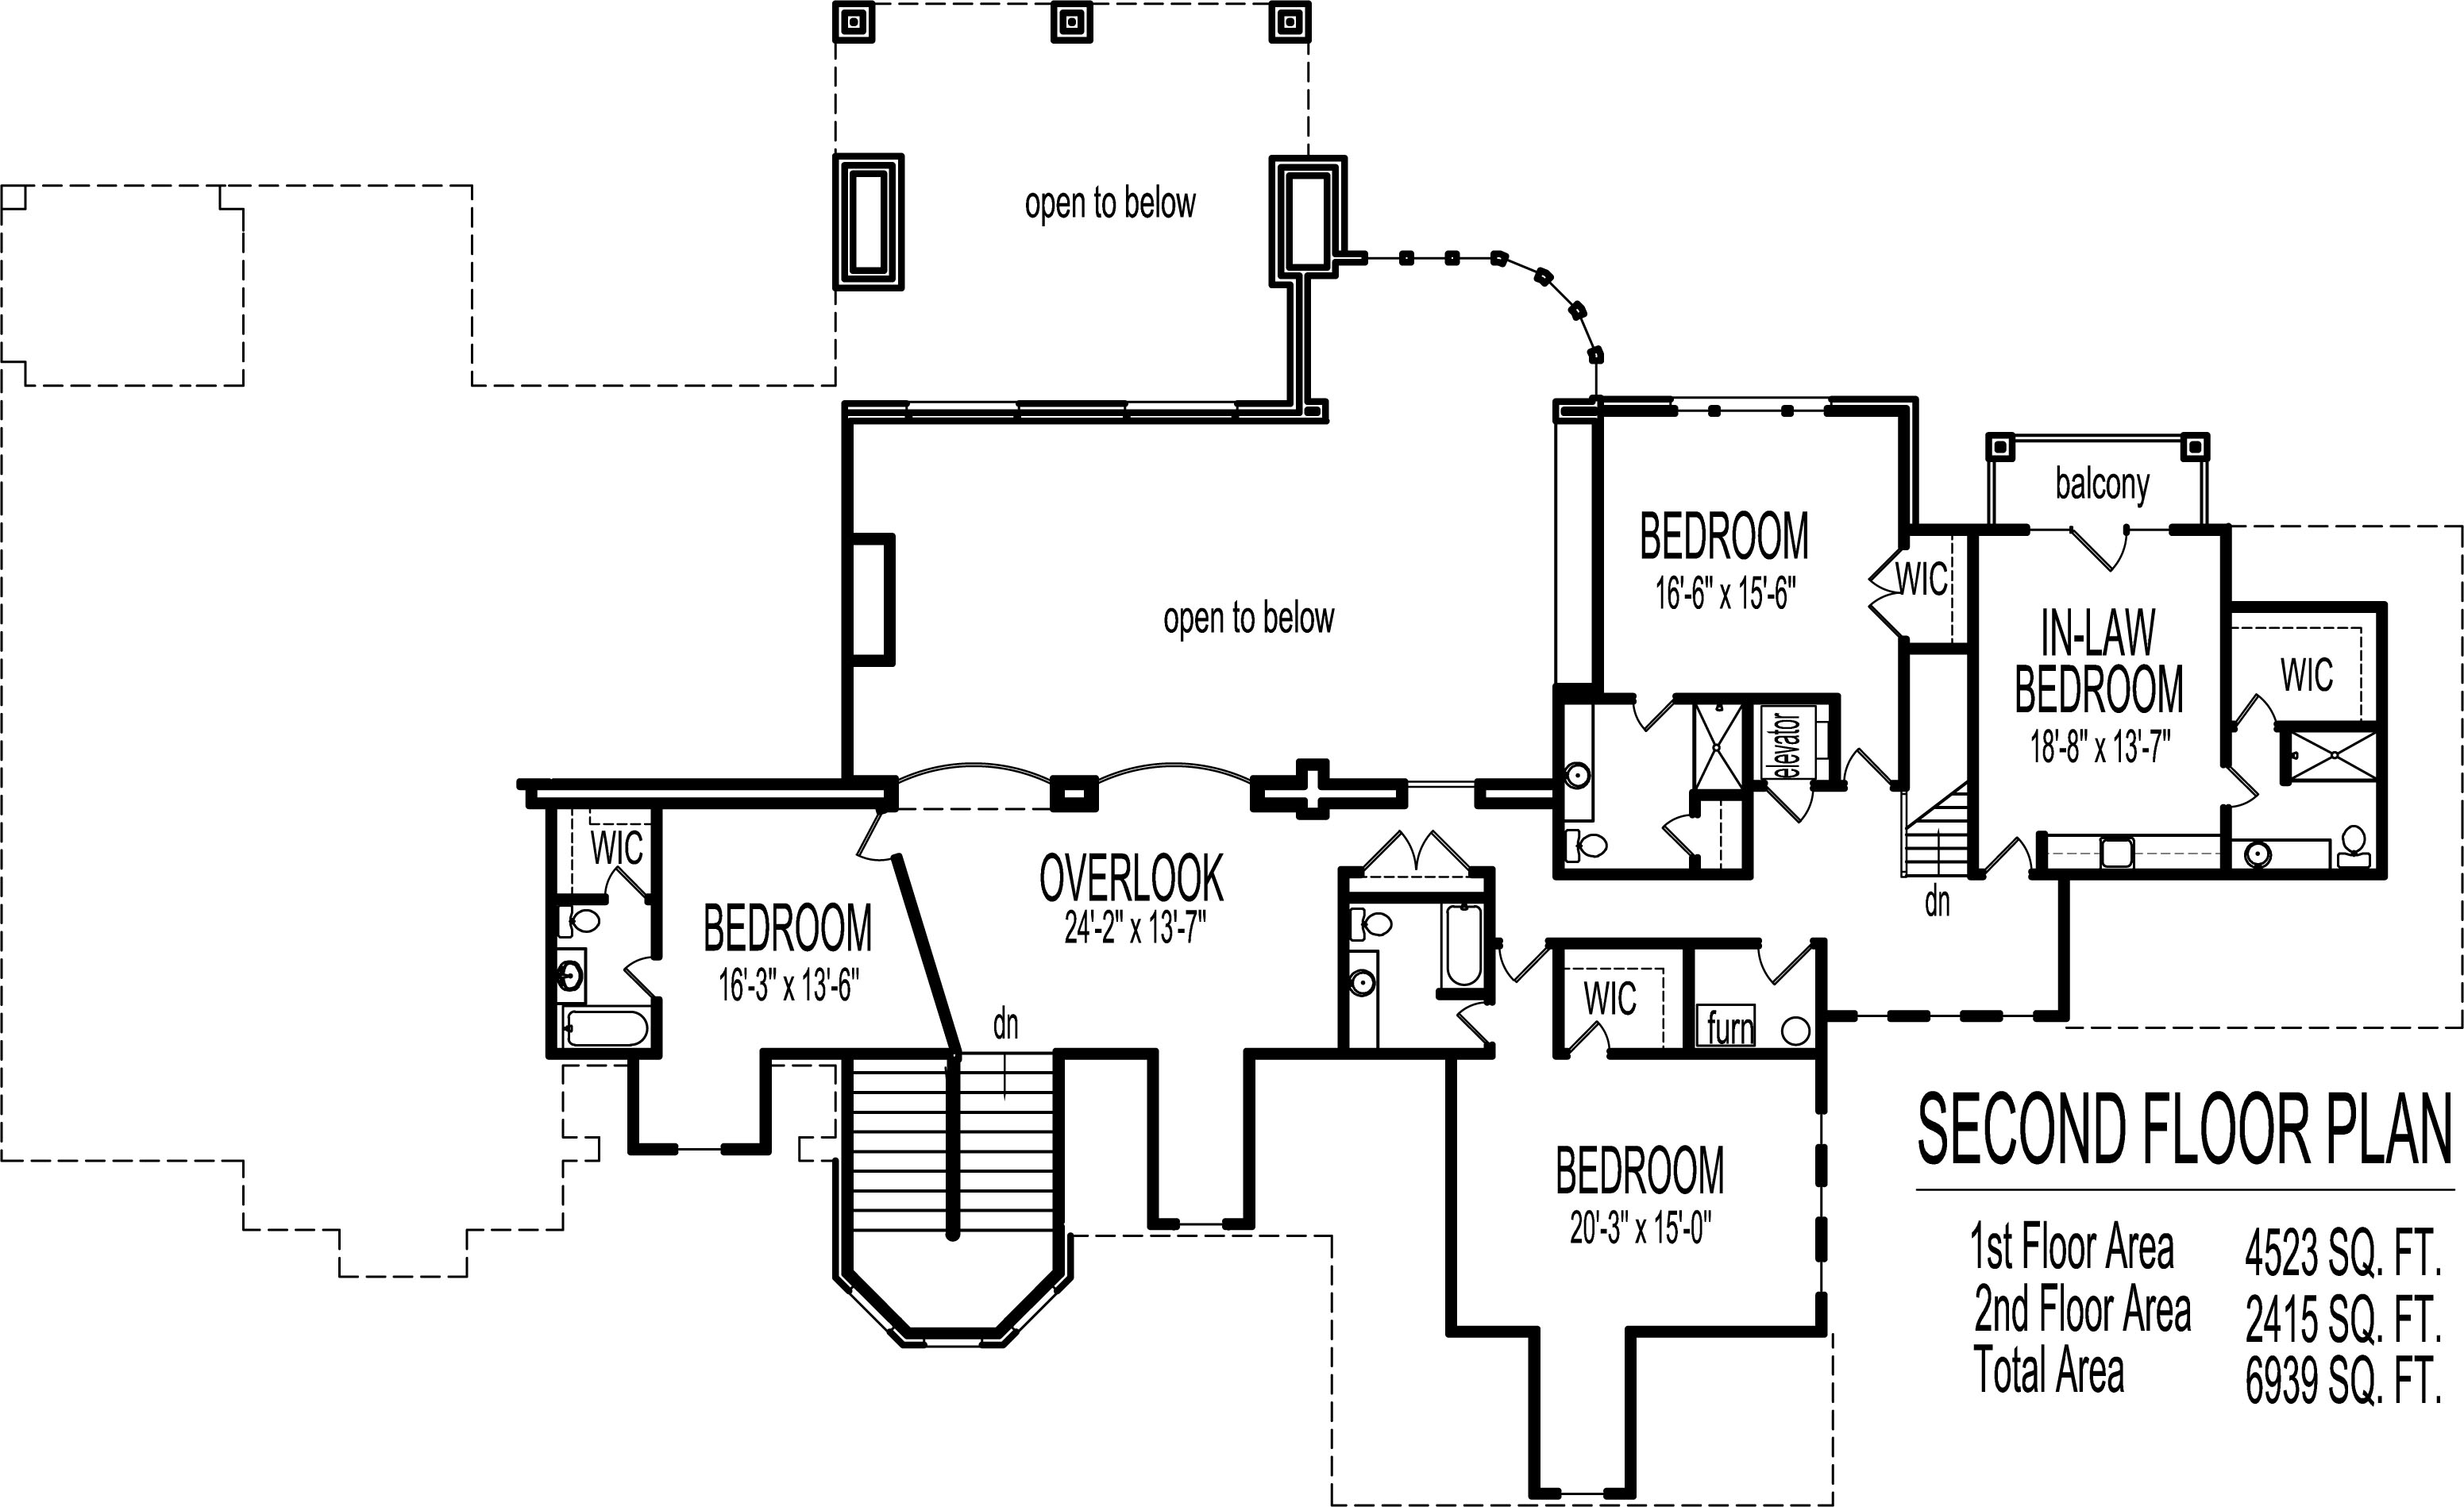 Mansion House Floor Plans Blueprints 6 Bedroom 2 Story 10000 Sq Ft - ^